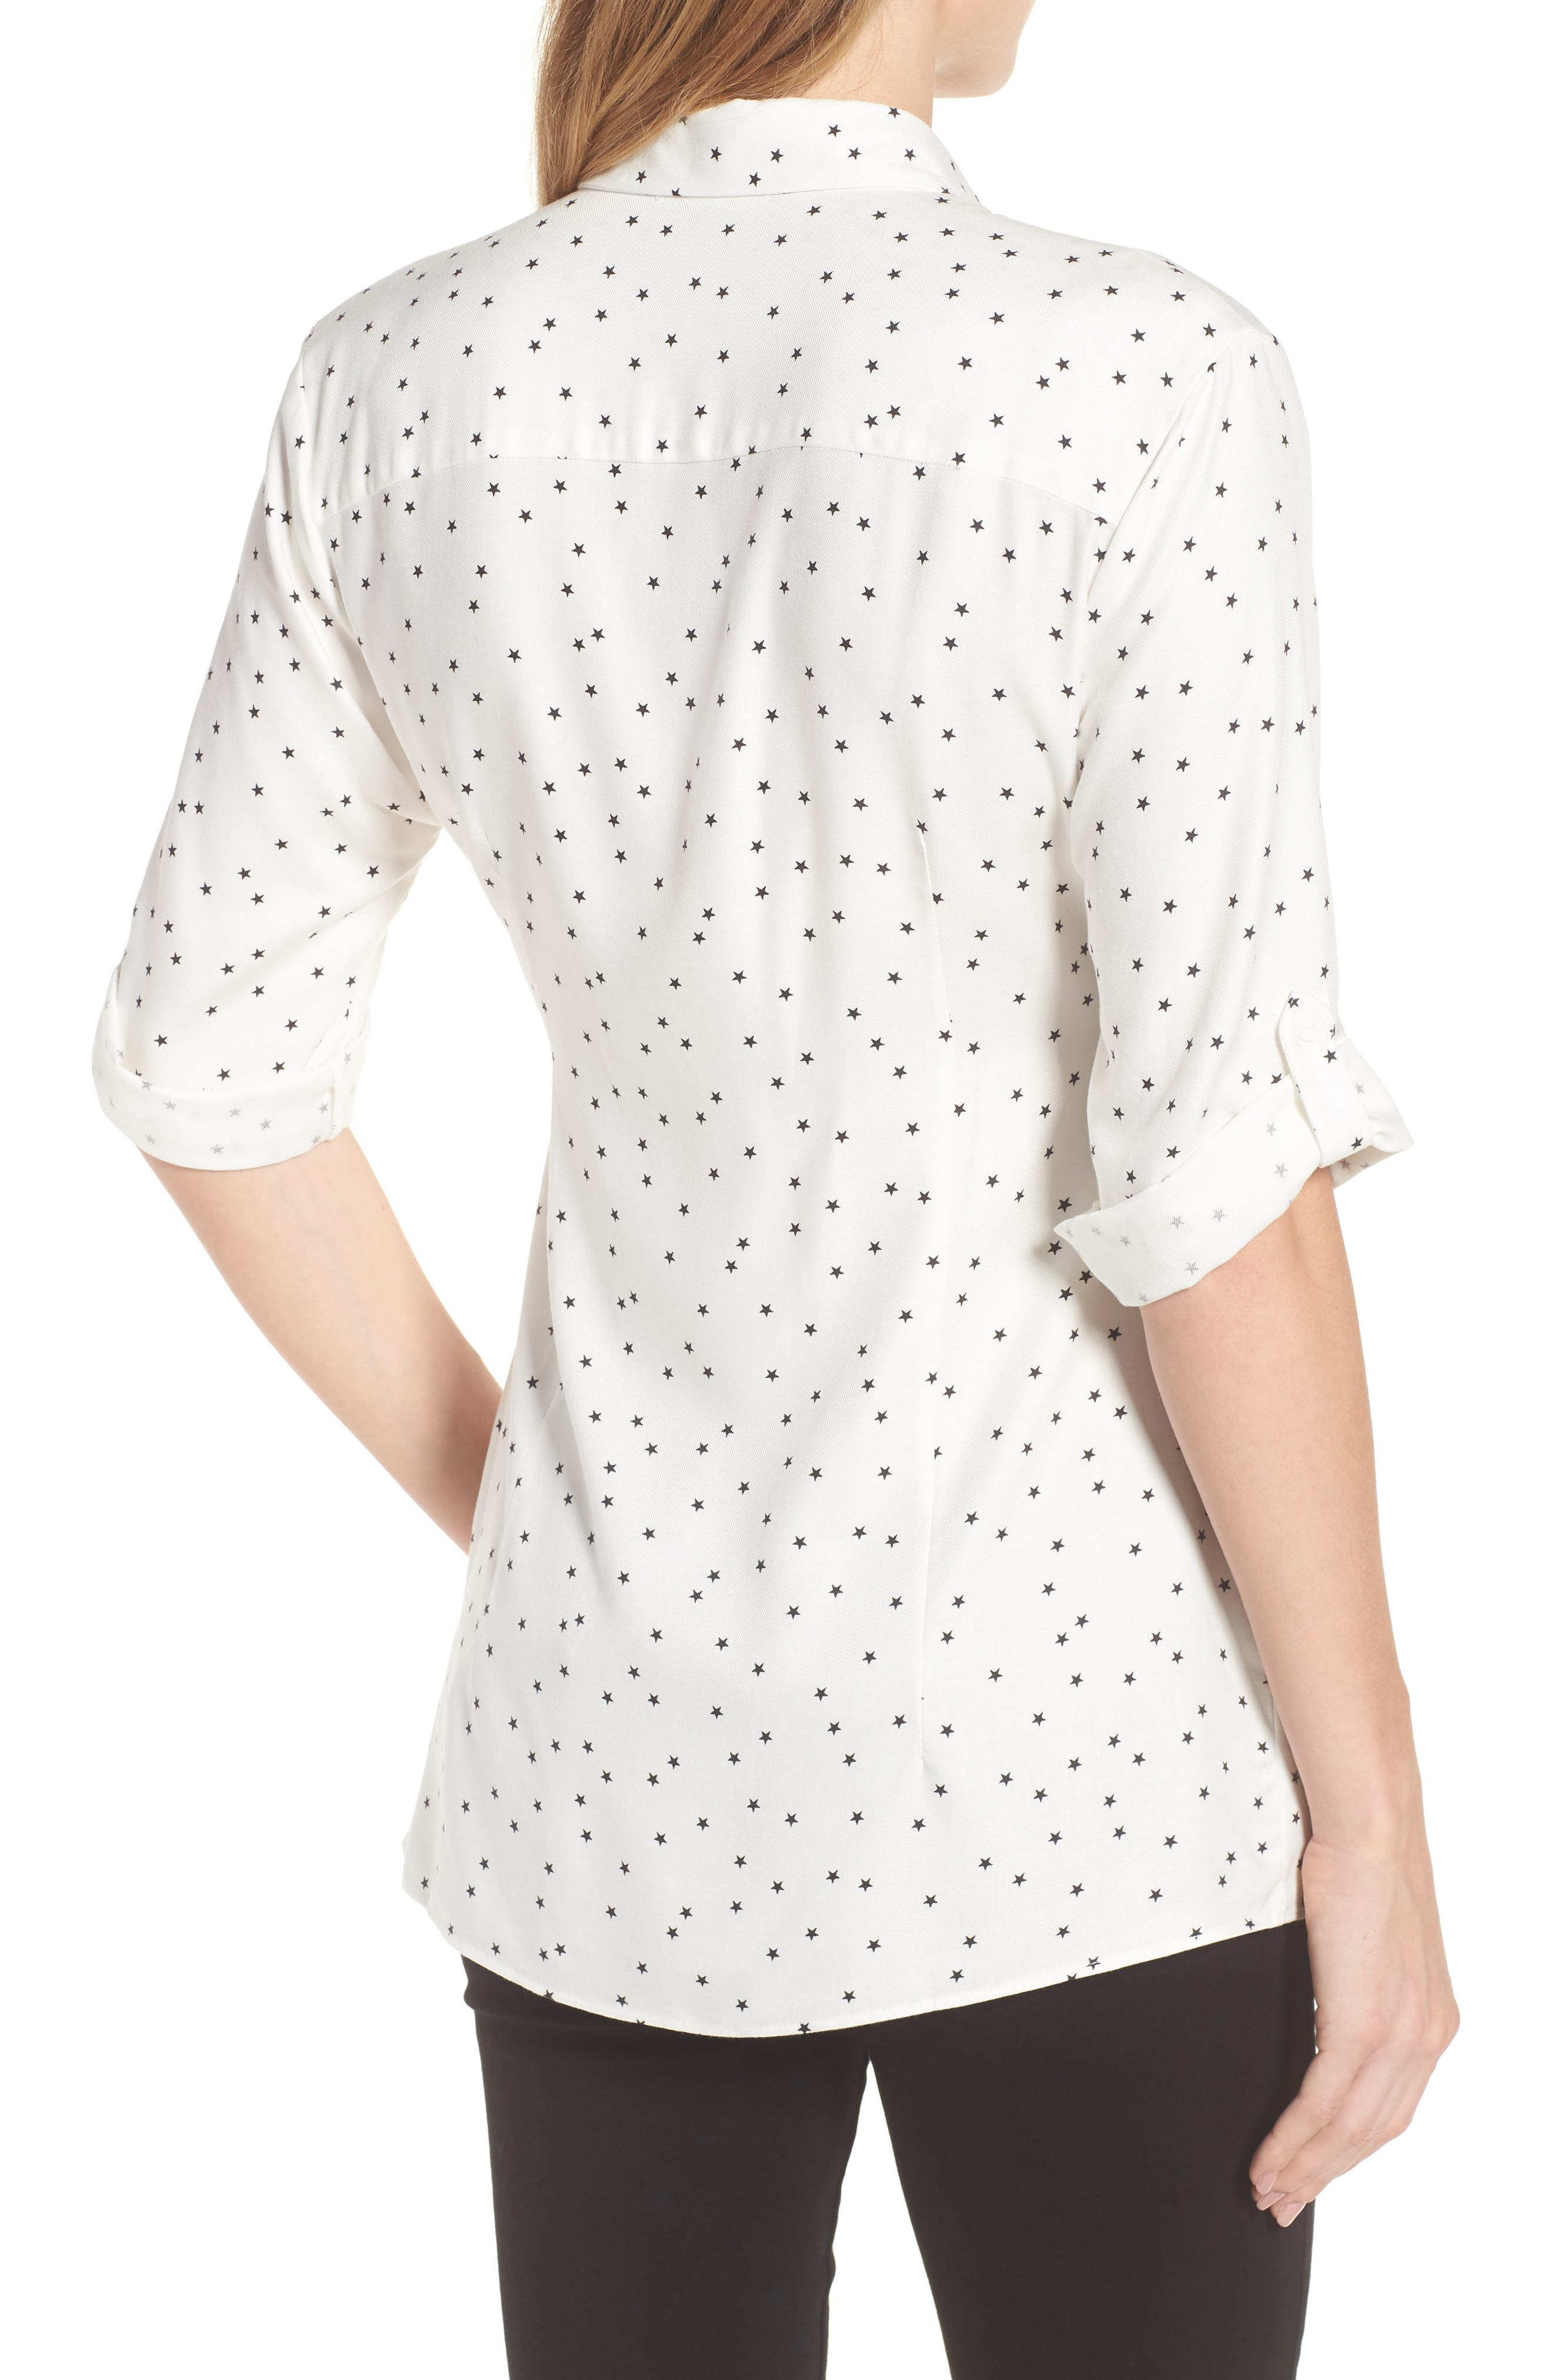 Selina Maternity Shirt,                             Alternate thumbnail 2, color,                             OFF WHITE STAR PRINT